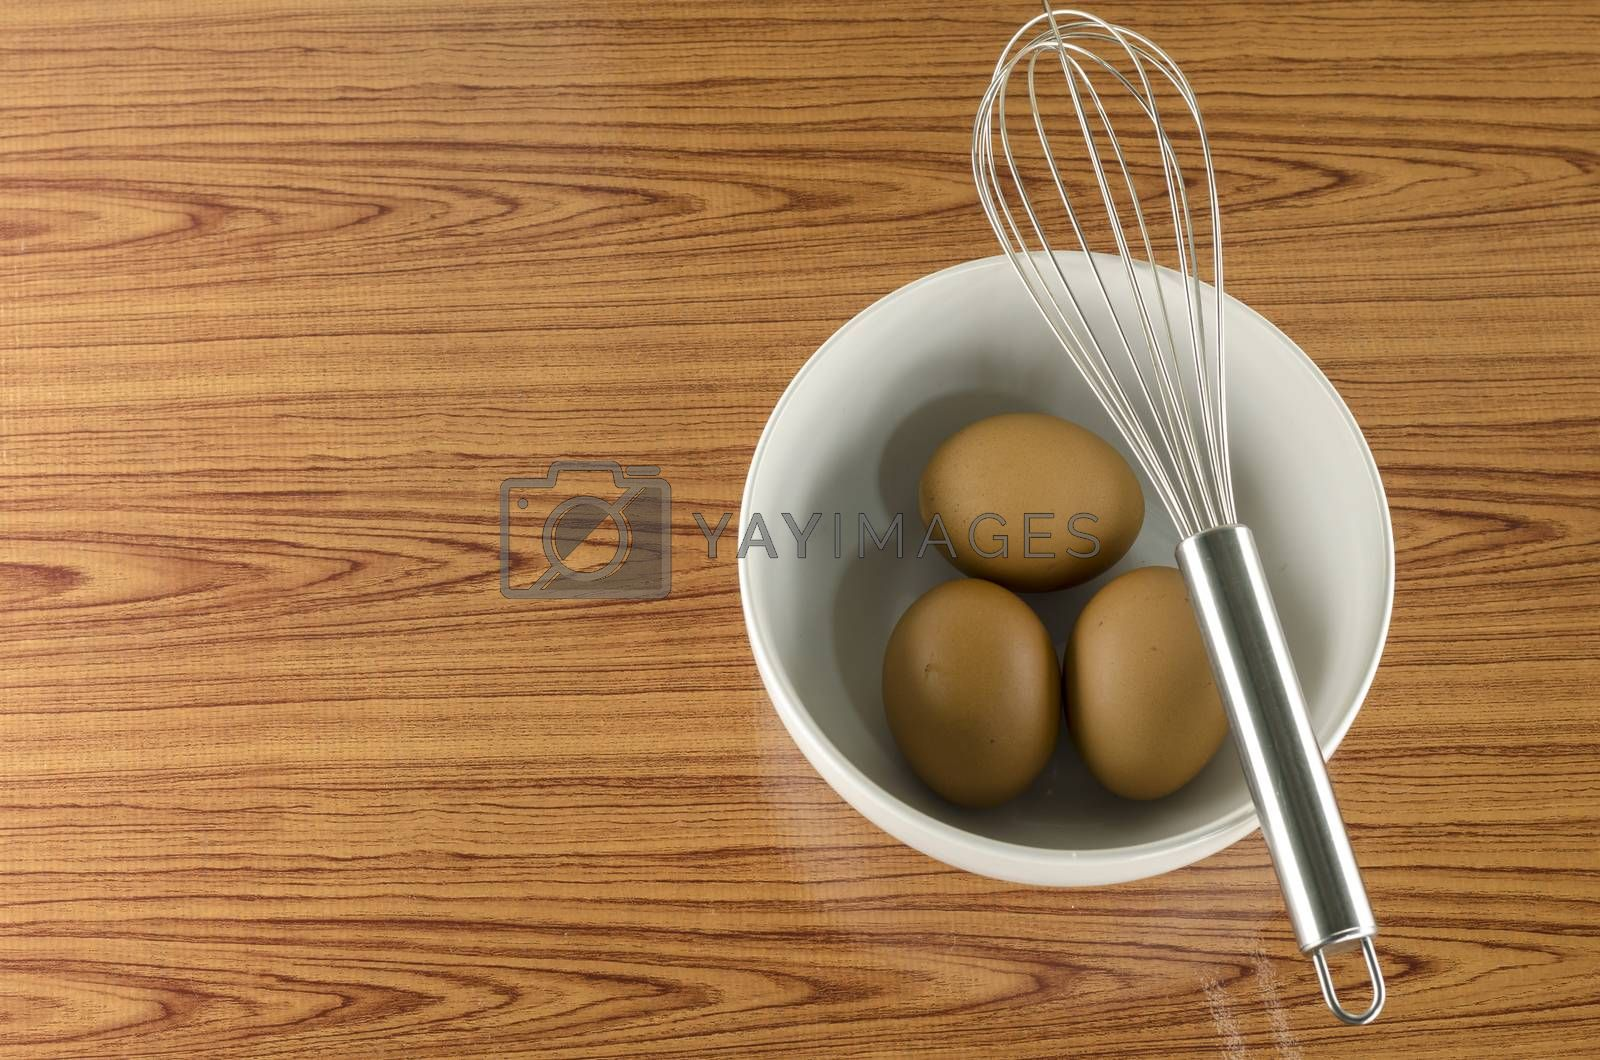 Royalty free image of whisk and egg in white bowl by ammza12